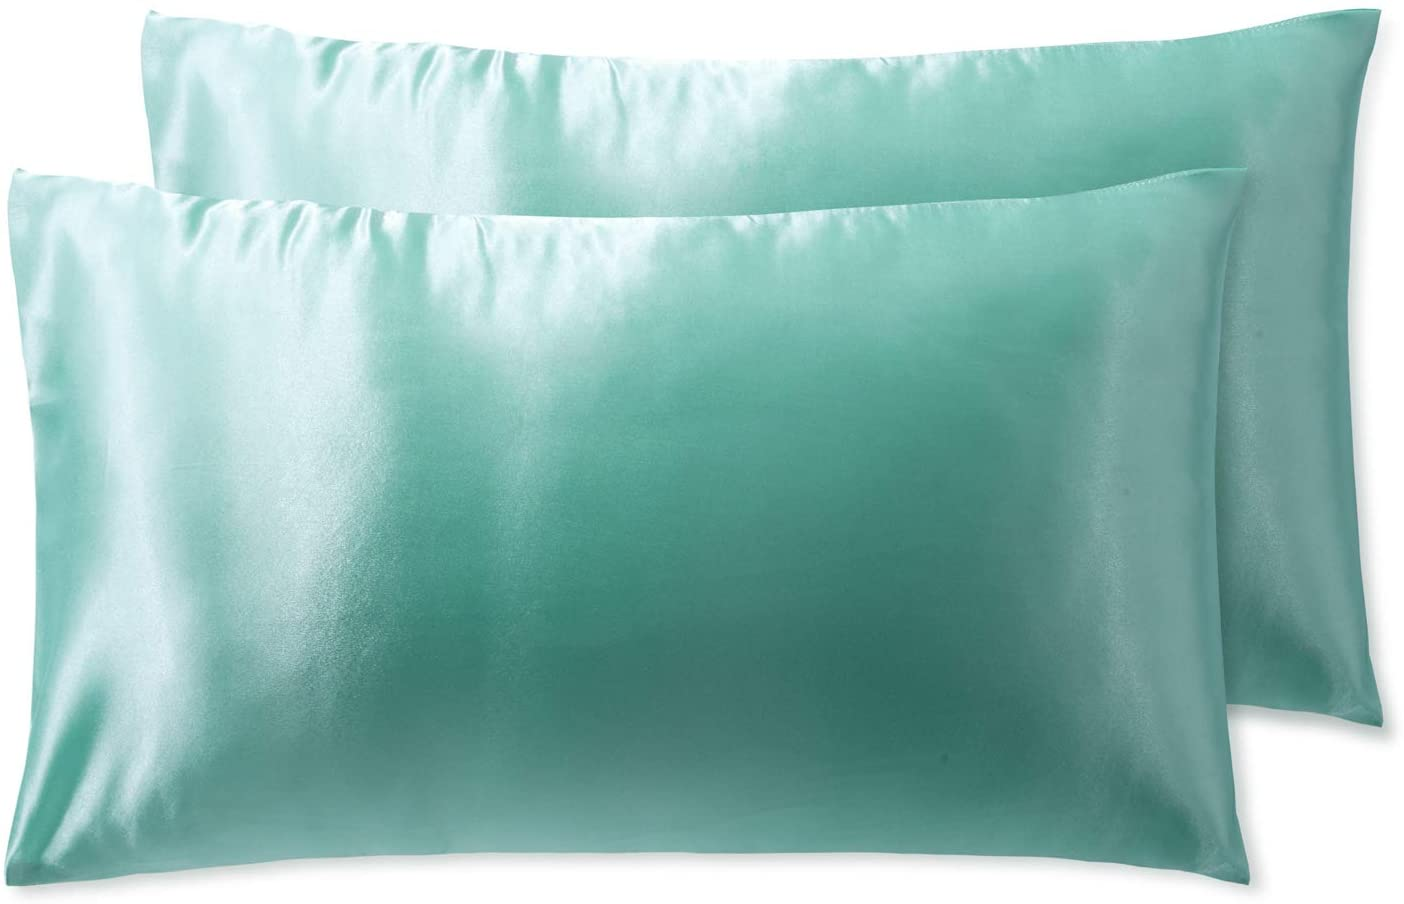 OSVINO Silky Satin Pillowcases for Hair and Skin 2 Pack Super Soft Breathable Pillow Covers with Envelope Closure, Turquoise, Queen 20x30